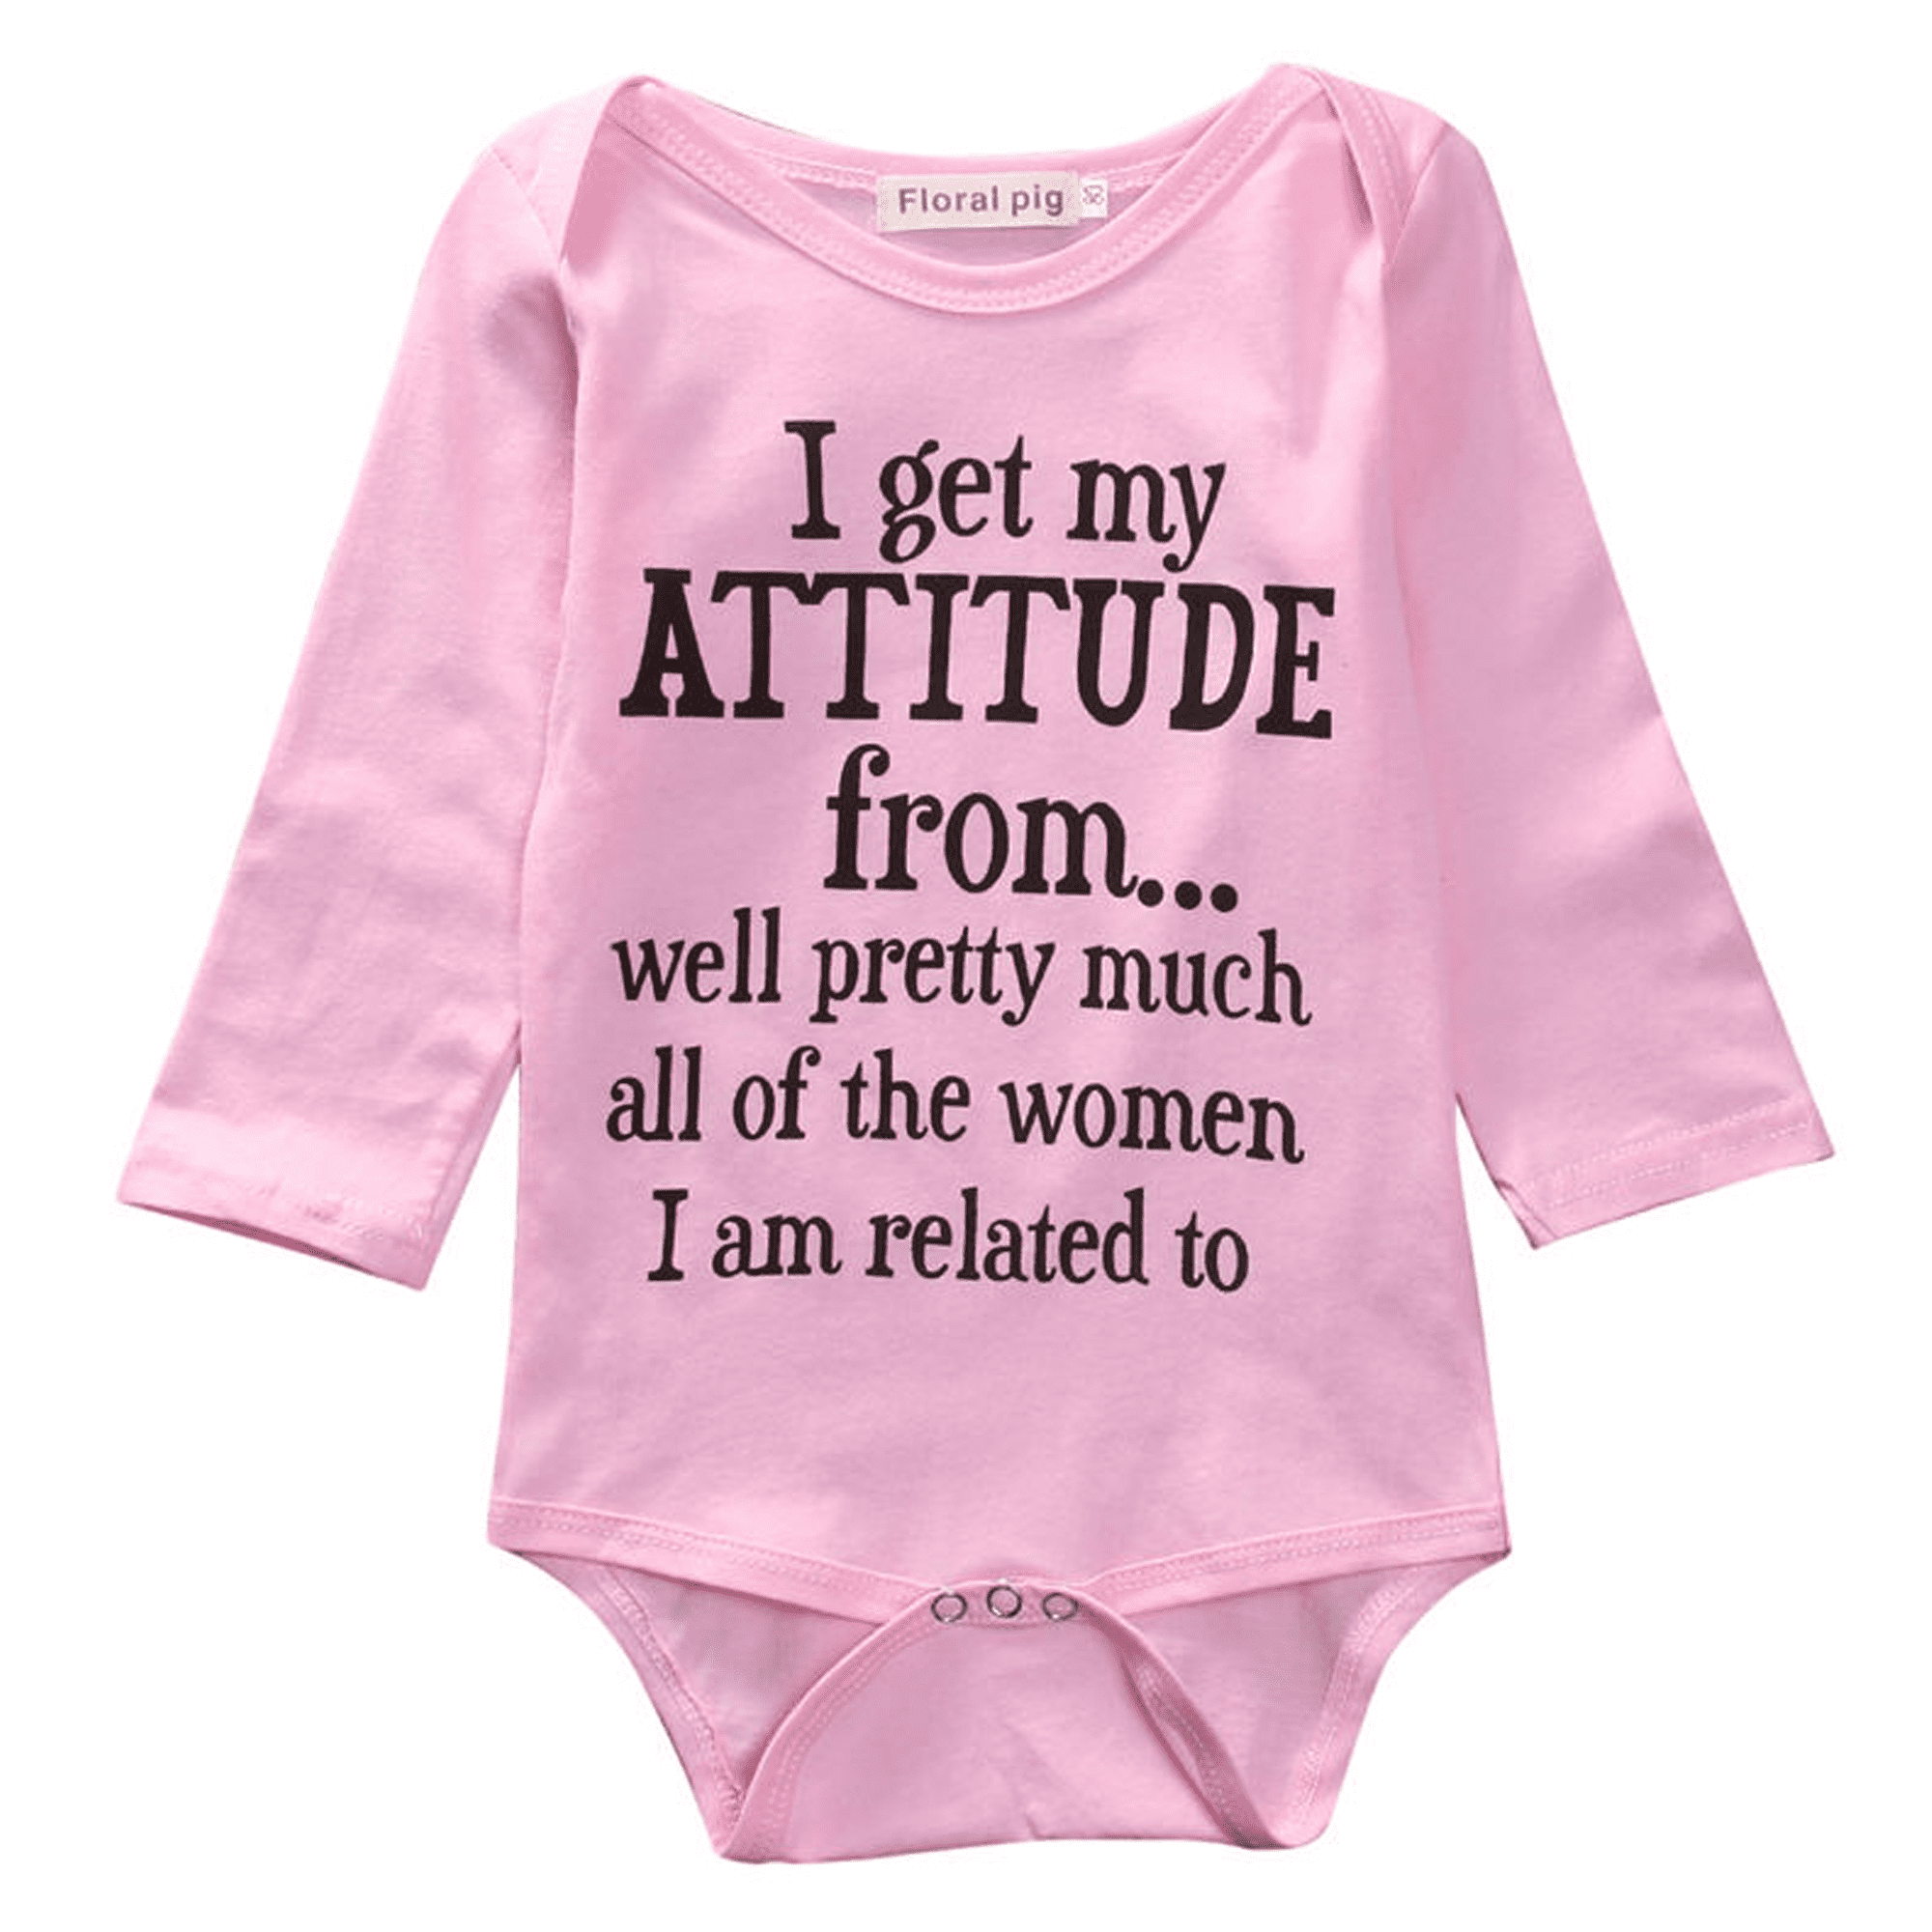 suanret - Cotton Newborn Baby Girls Bodysuit,Baby Shower Gift, Baby Girl  Clothes, Home Set - Walmart.com